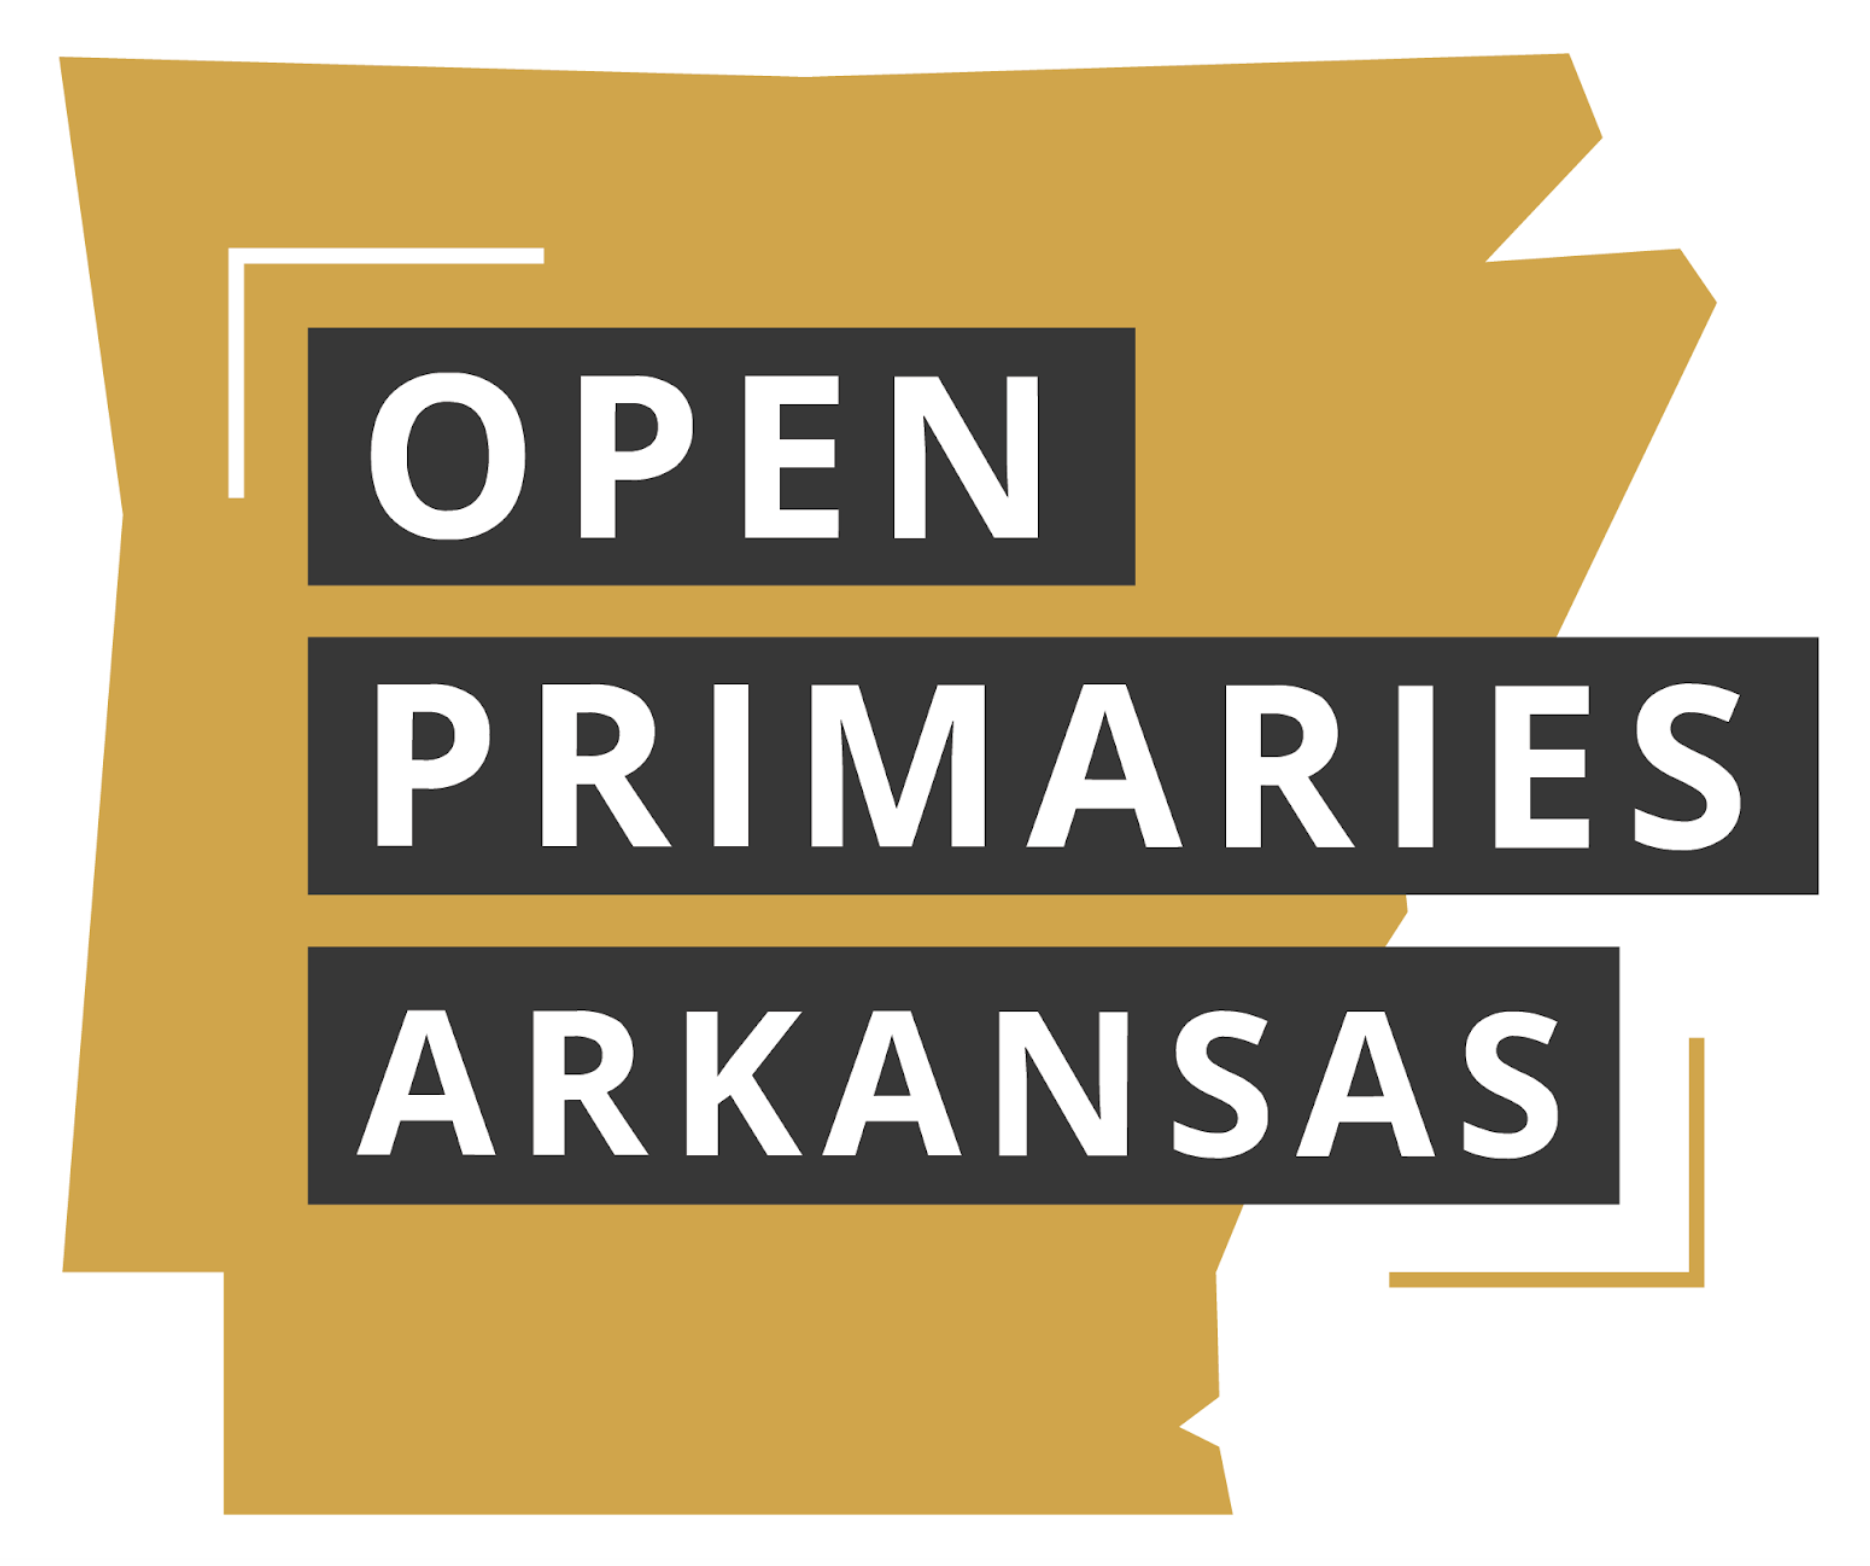 Special master says unmeetable canvassing requirement could doom open primary and legislative redistricting amendments - Arkansas Times